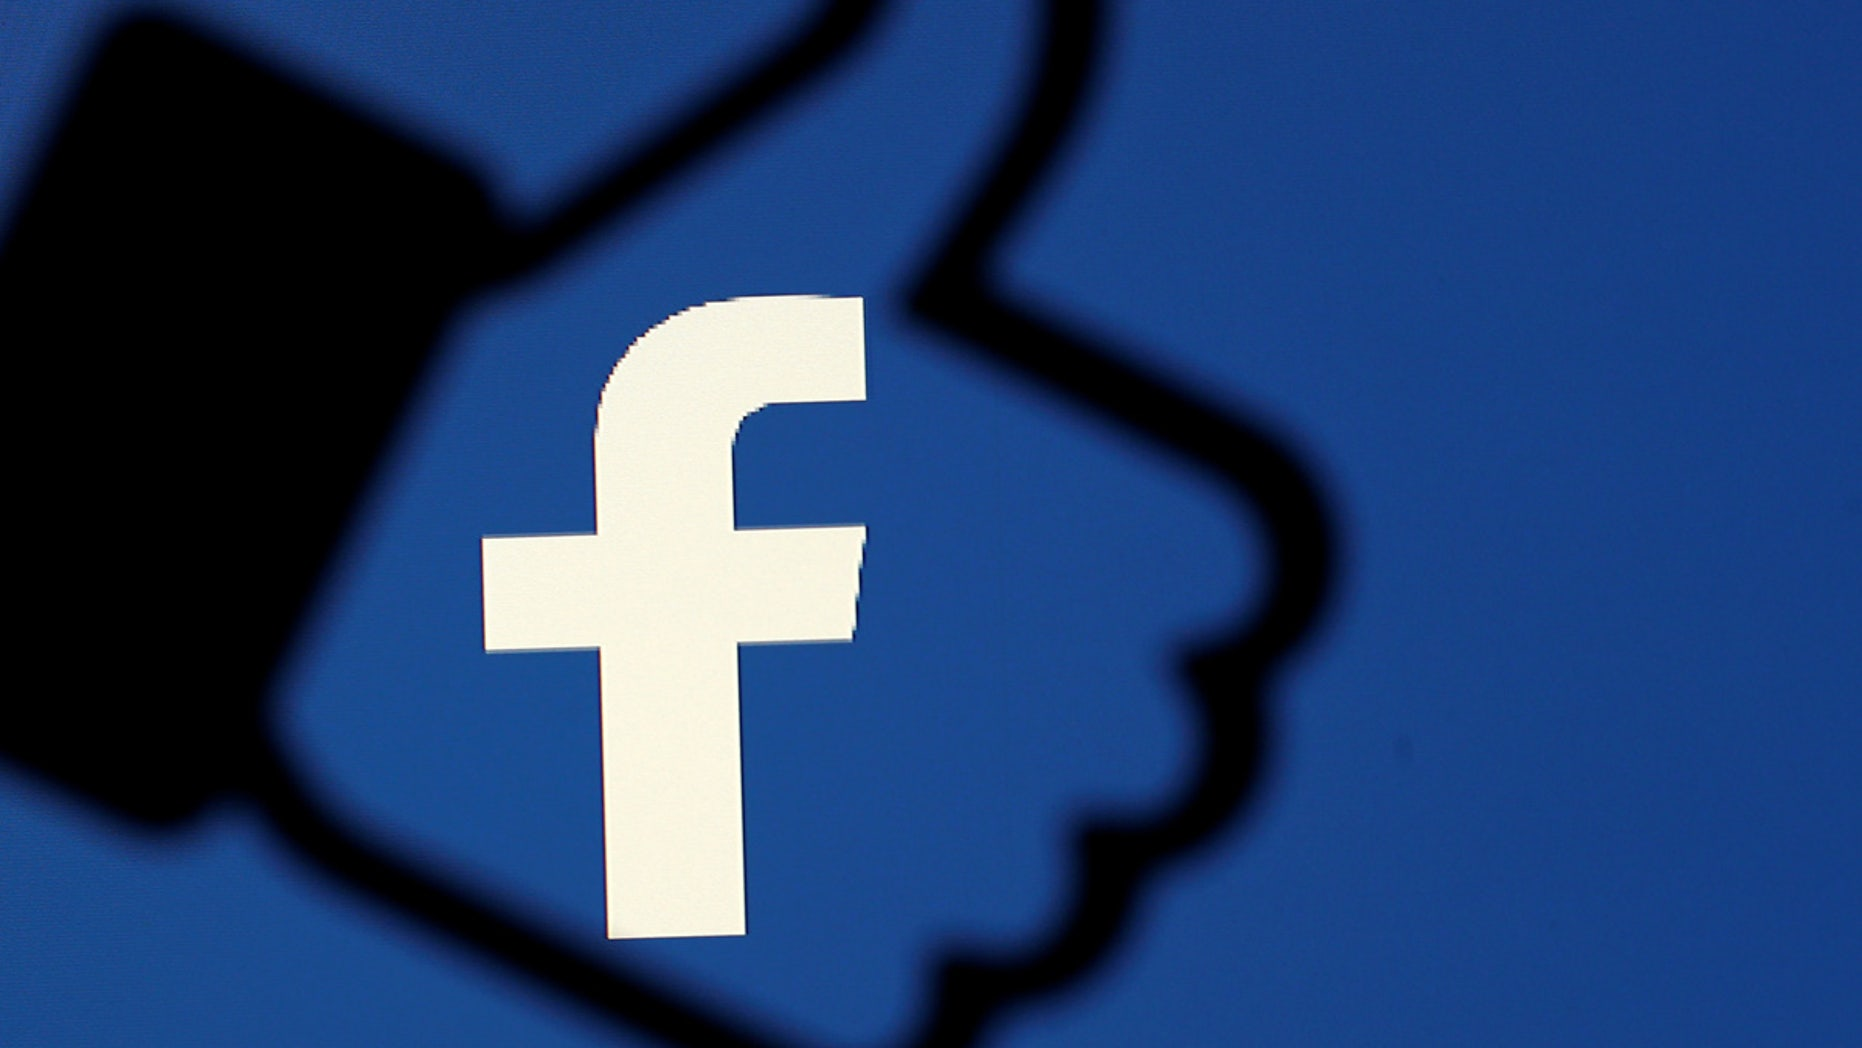 Facebook is investigating whether another data analytics firm improperly accessed users' information.